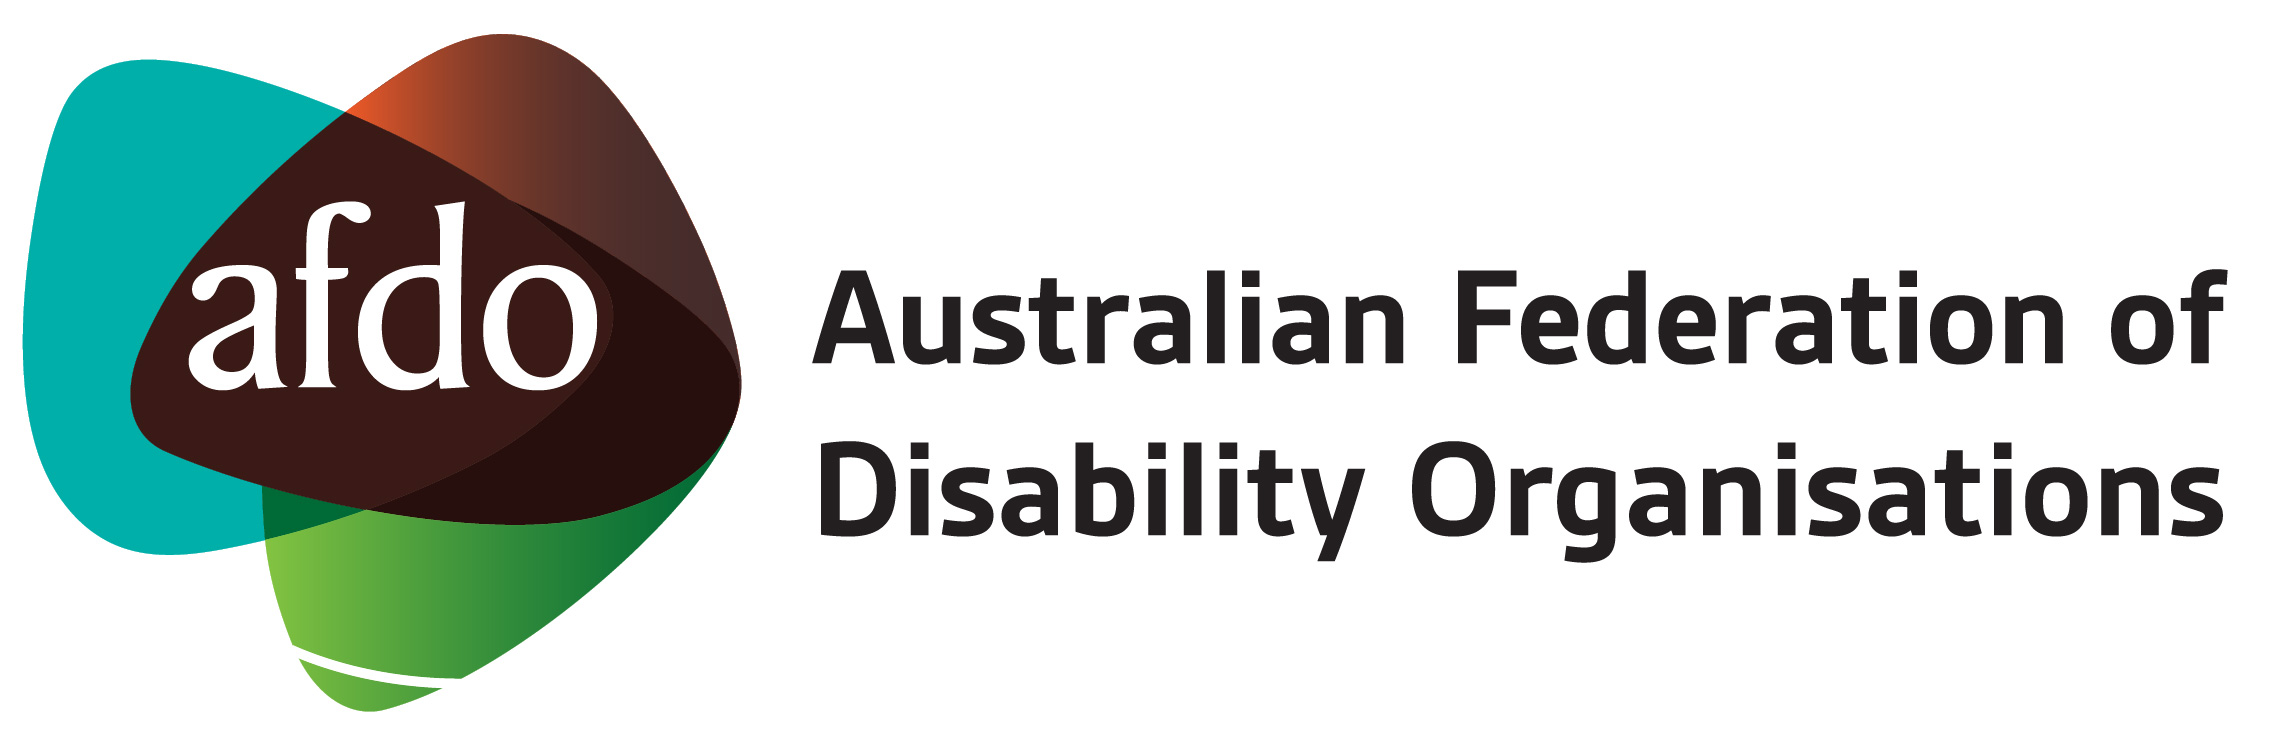 Australian Federation of Disability Organisations - Home page